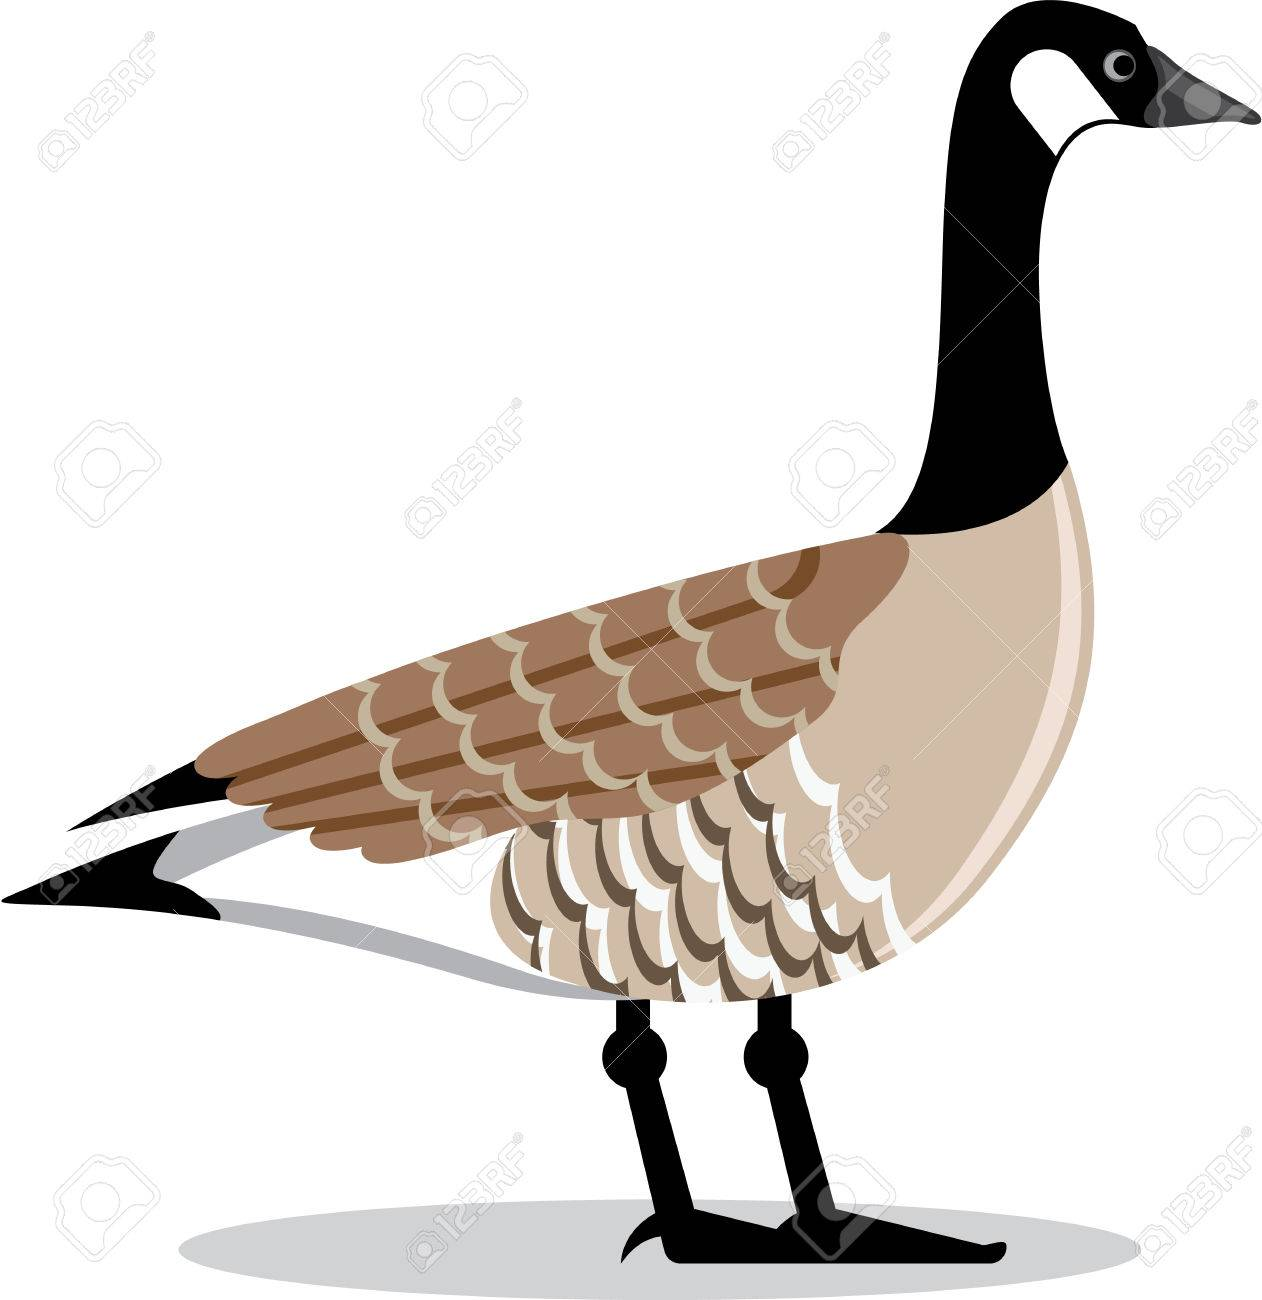 brown goose vector stylized illustration clip art image royalty free rh 123rf com goose clipart black and white goose clipart png